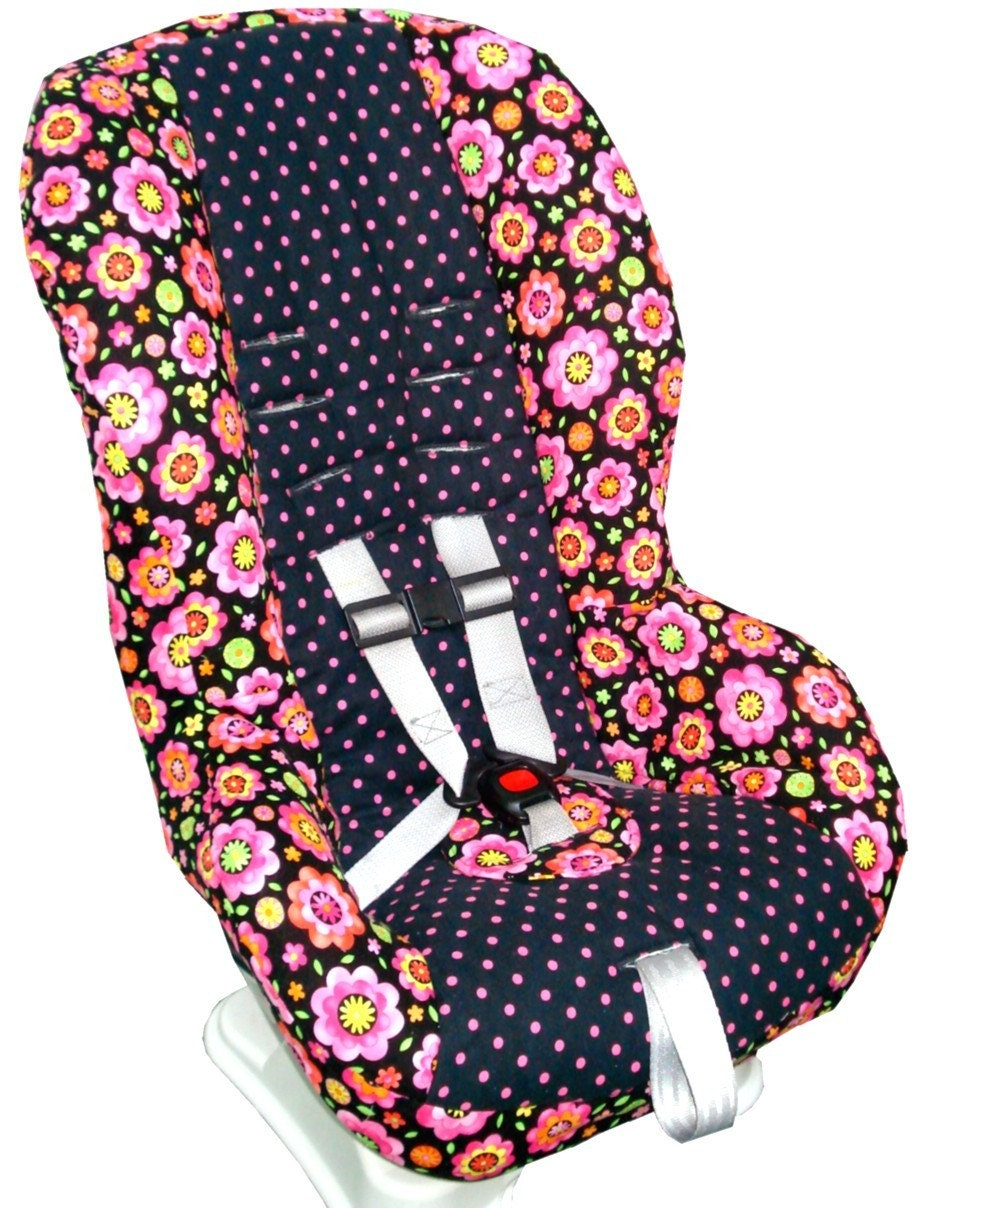 britax marathon replacement car seat cover by aebaby on etsy. Black Bedroom Furniture Sets. Home Design Ideas